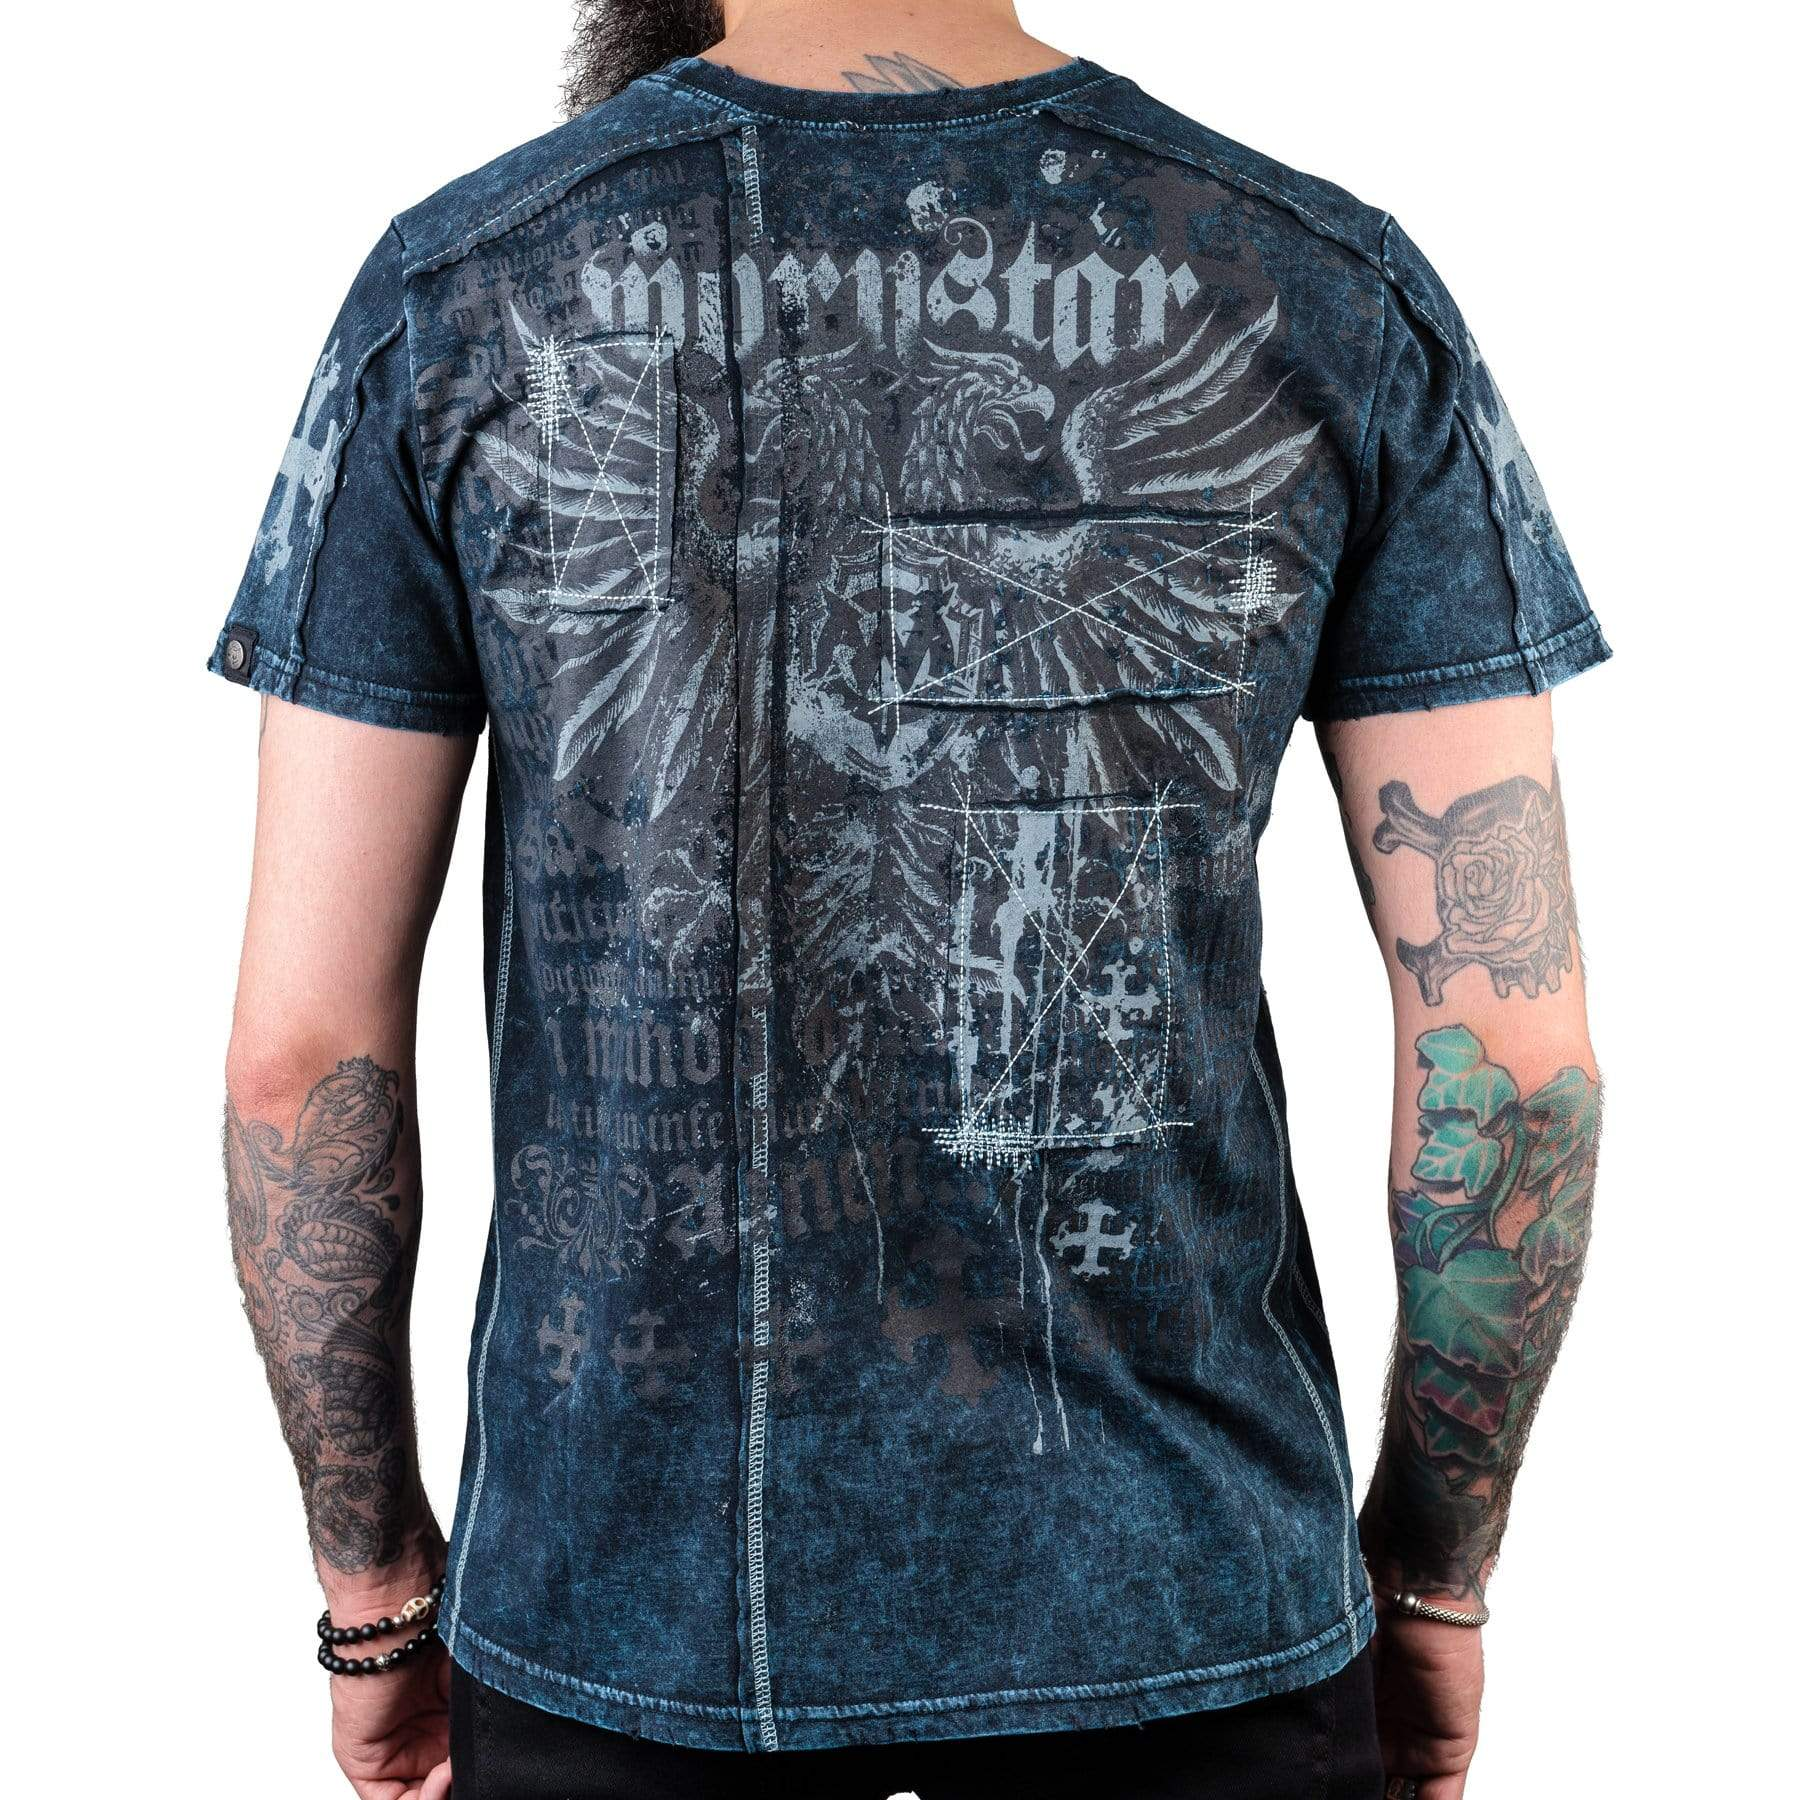 Wornstar Clothing Legion tee with printed eagle graphic.